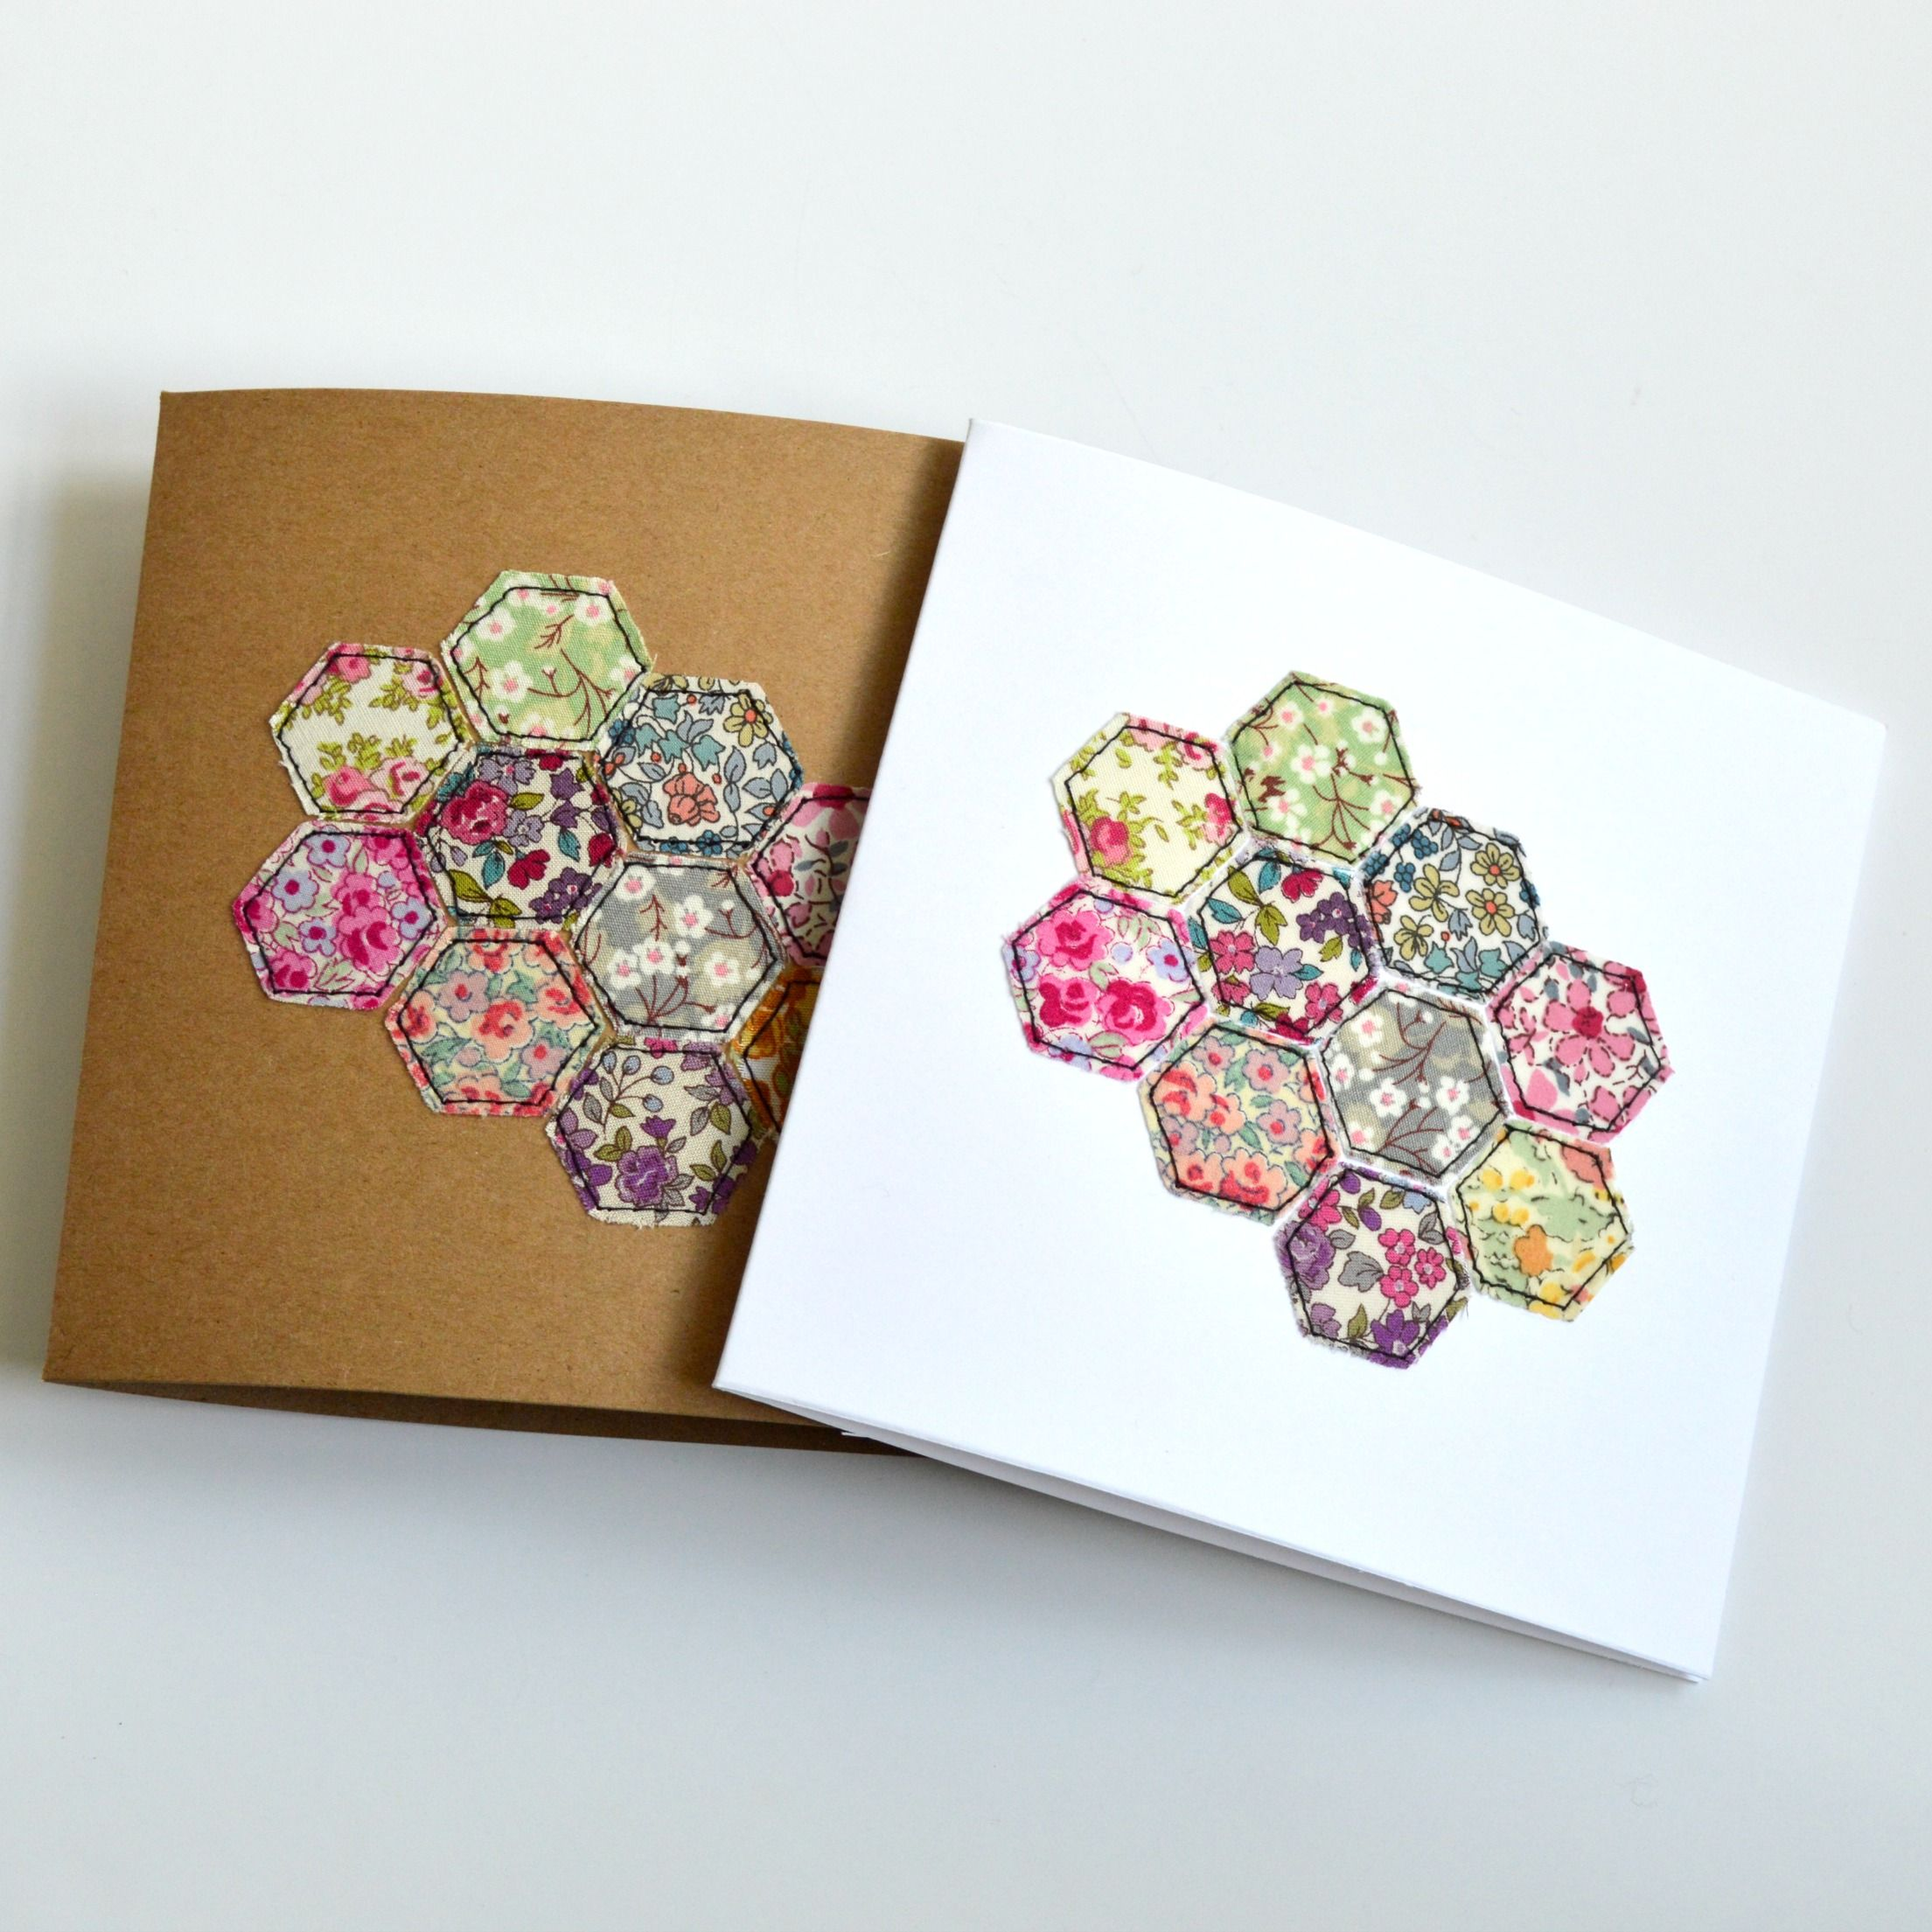 Patchwork embroidered greetings cards blank inside for your own patchwork embroidered greetings cards blank inside for your own message handmade by stitch galore kristyandbryce Image collections